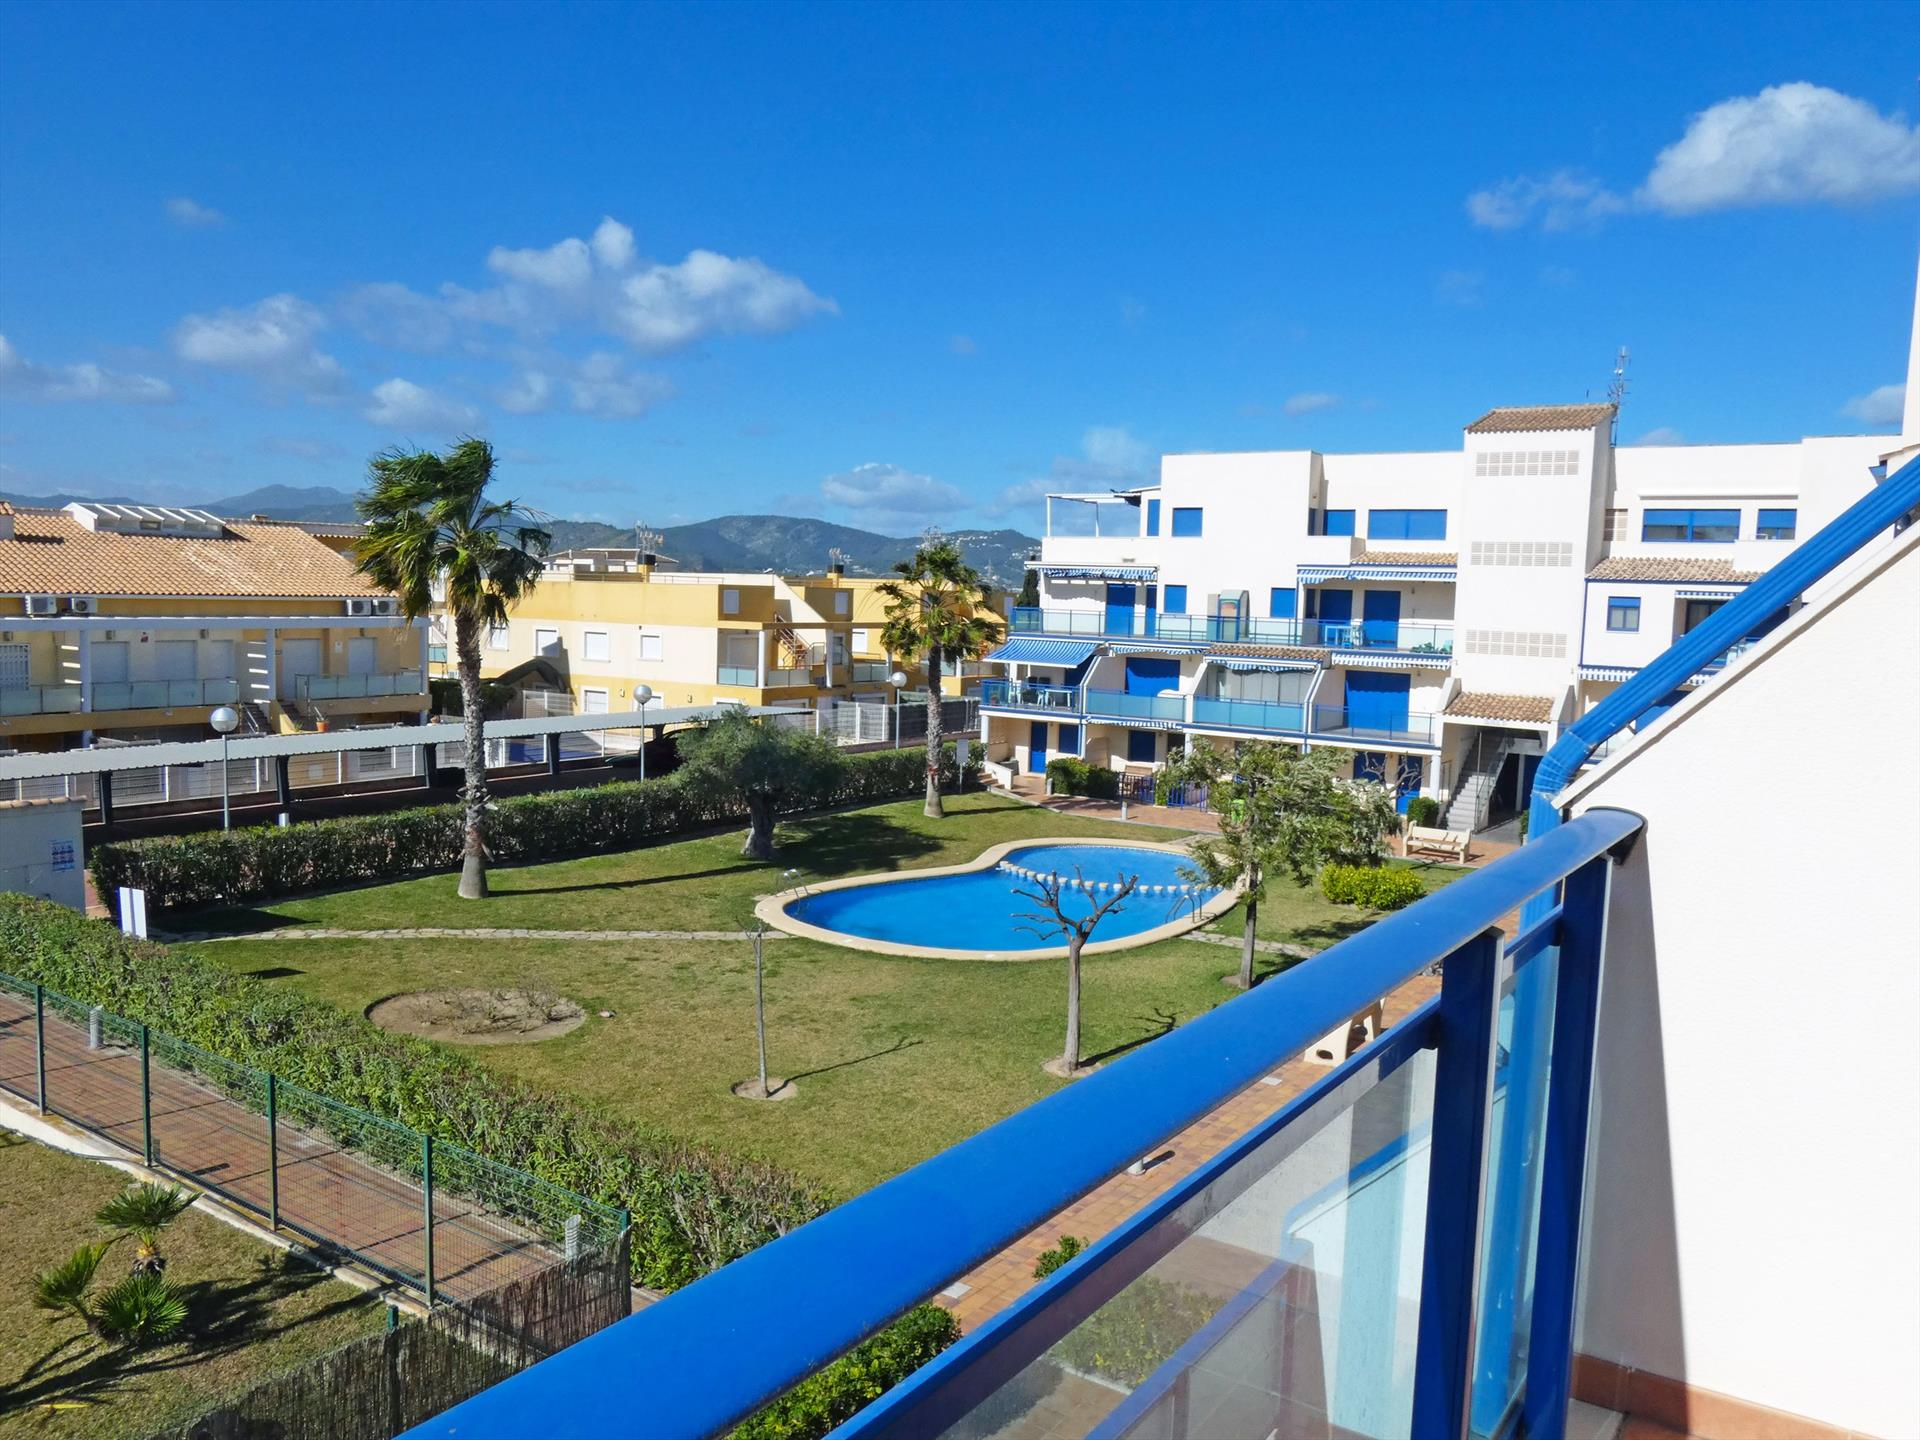 AP305 Benifla Playa Rabdells, Classic and nice apartment in Oliva, on the Costa Blanca, Spain  with communal pool for 4 persons.....